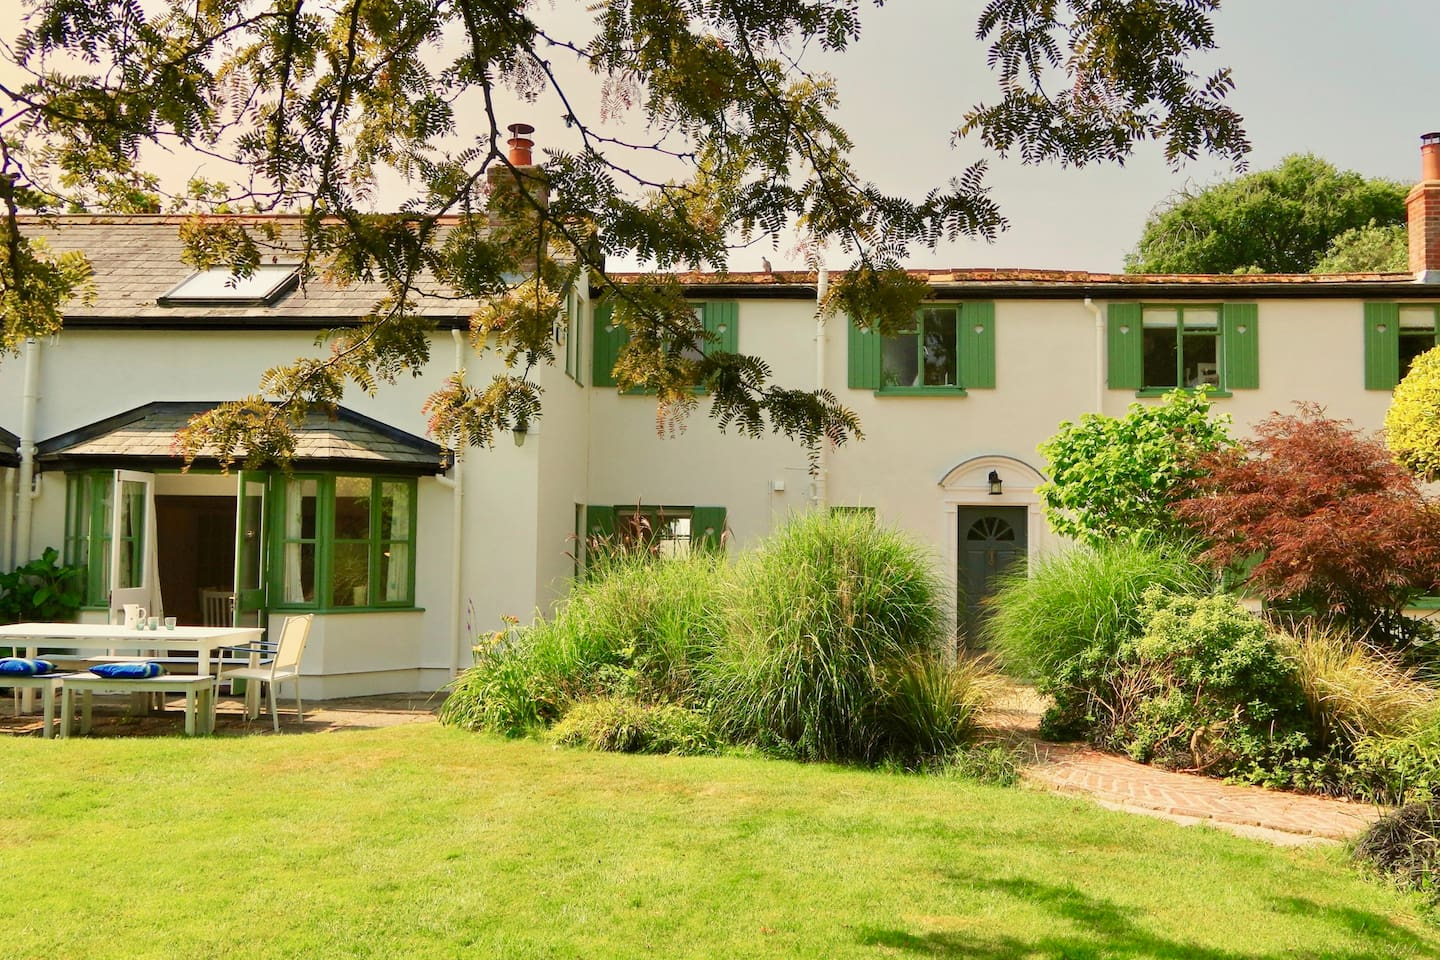 Set in the lush grounds of the renowned Apple Court Gardens